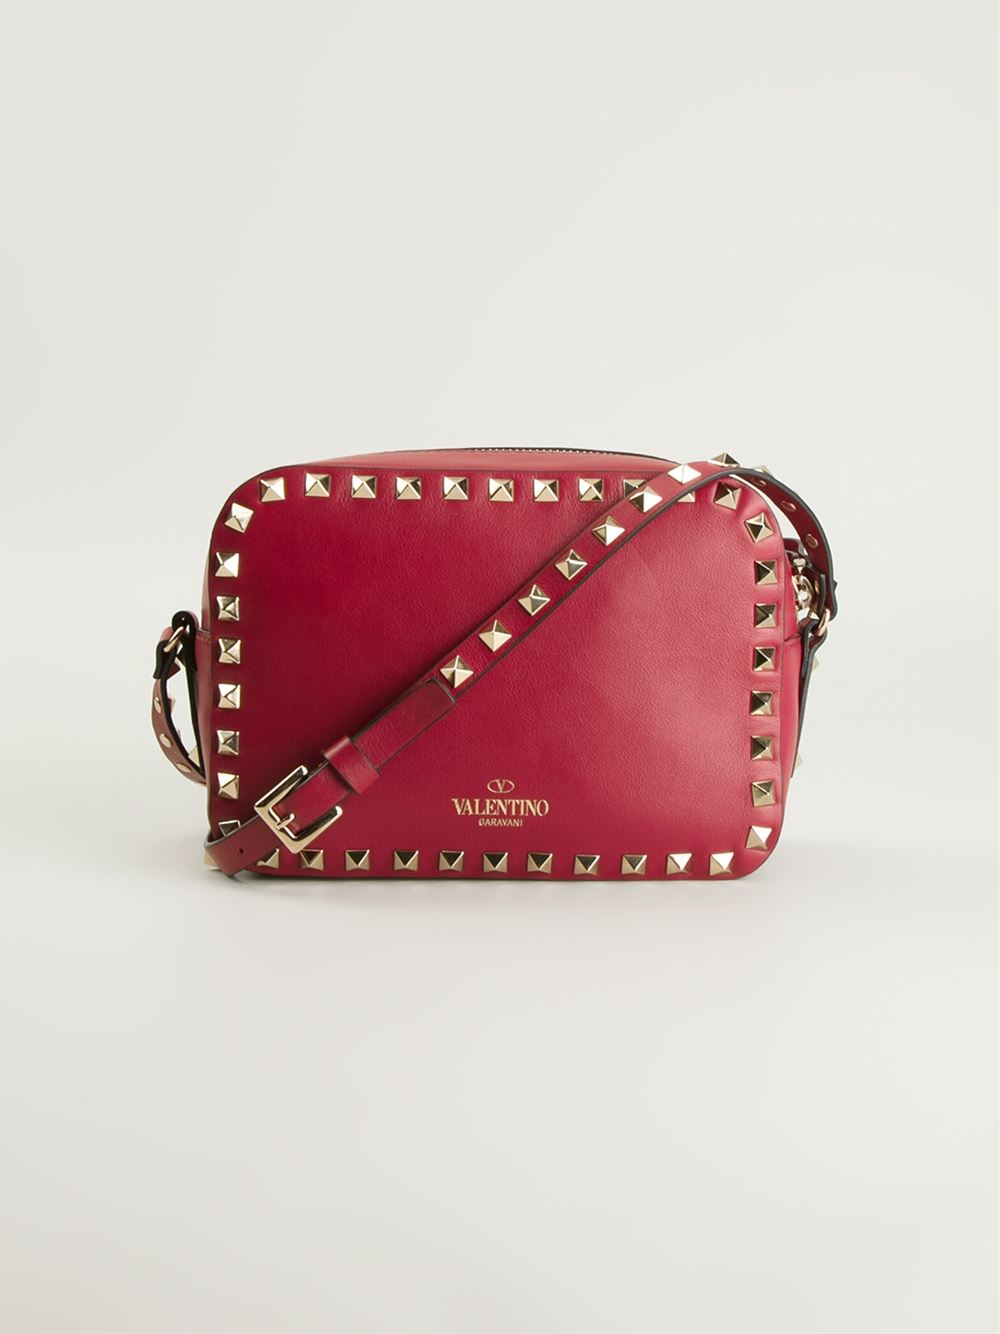 2752480d0 Gallery. Previously sold at: Farfetch · Women's Valentino Rockstud Bags